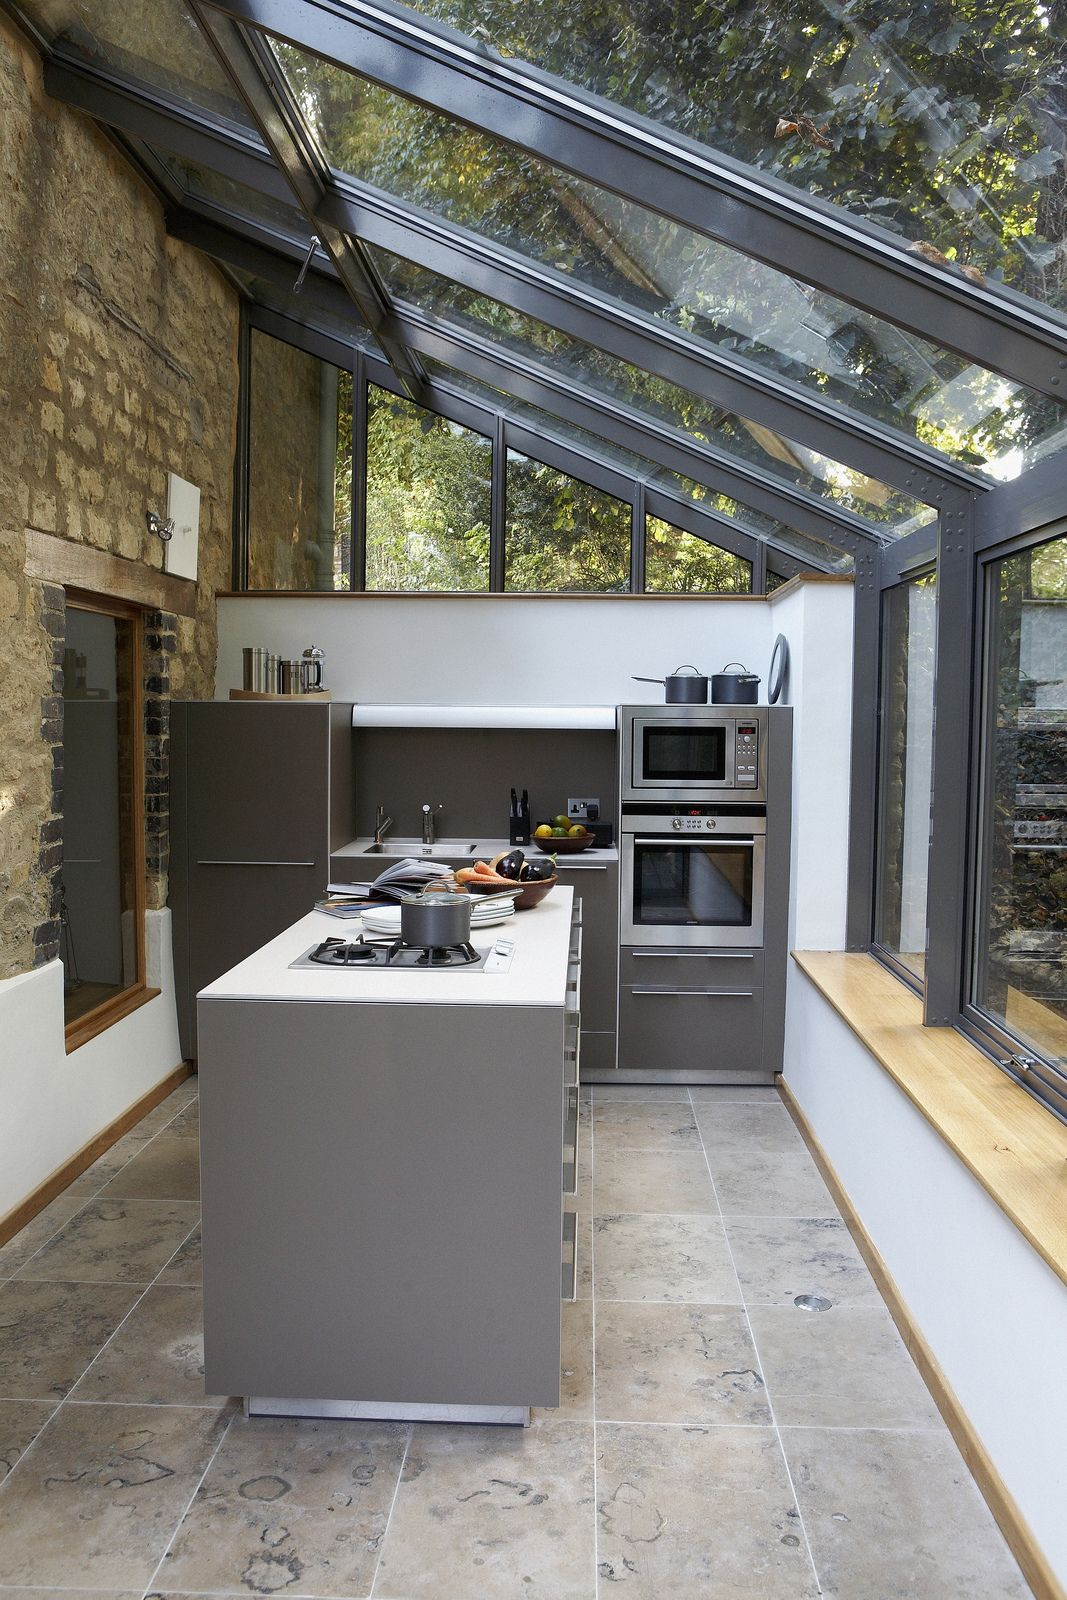 farmhouse kitchen extension conservatory kitchen kitchen extension house extensions on a kitchen design id=74791